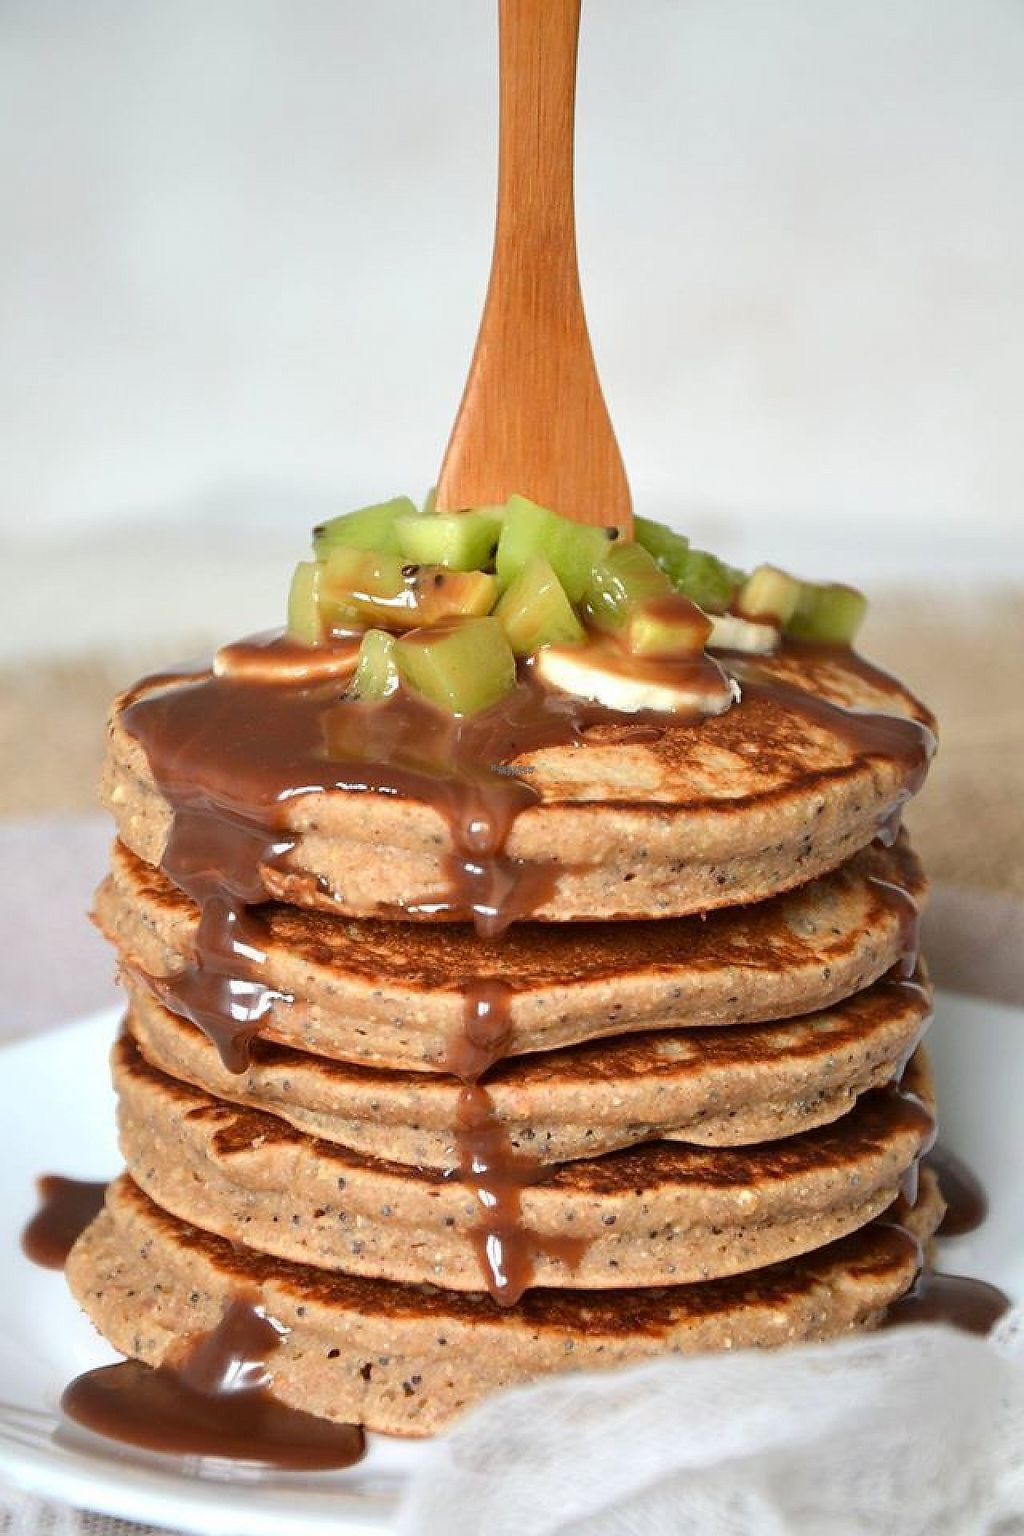 """Photo of La Vie Claire  by <a href=""""/members/profile/community"""">community</a> <br/>vegan hazelnut pancakes  <br/> February 4, 2017  - <a href='/contact/abuse/image/67099/221796'>Report</a>"""